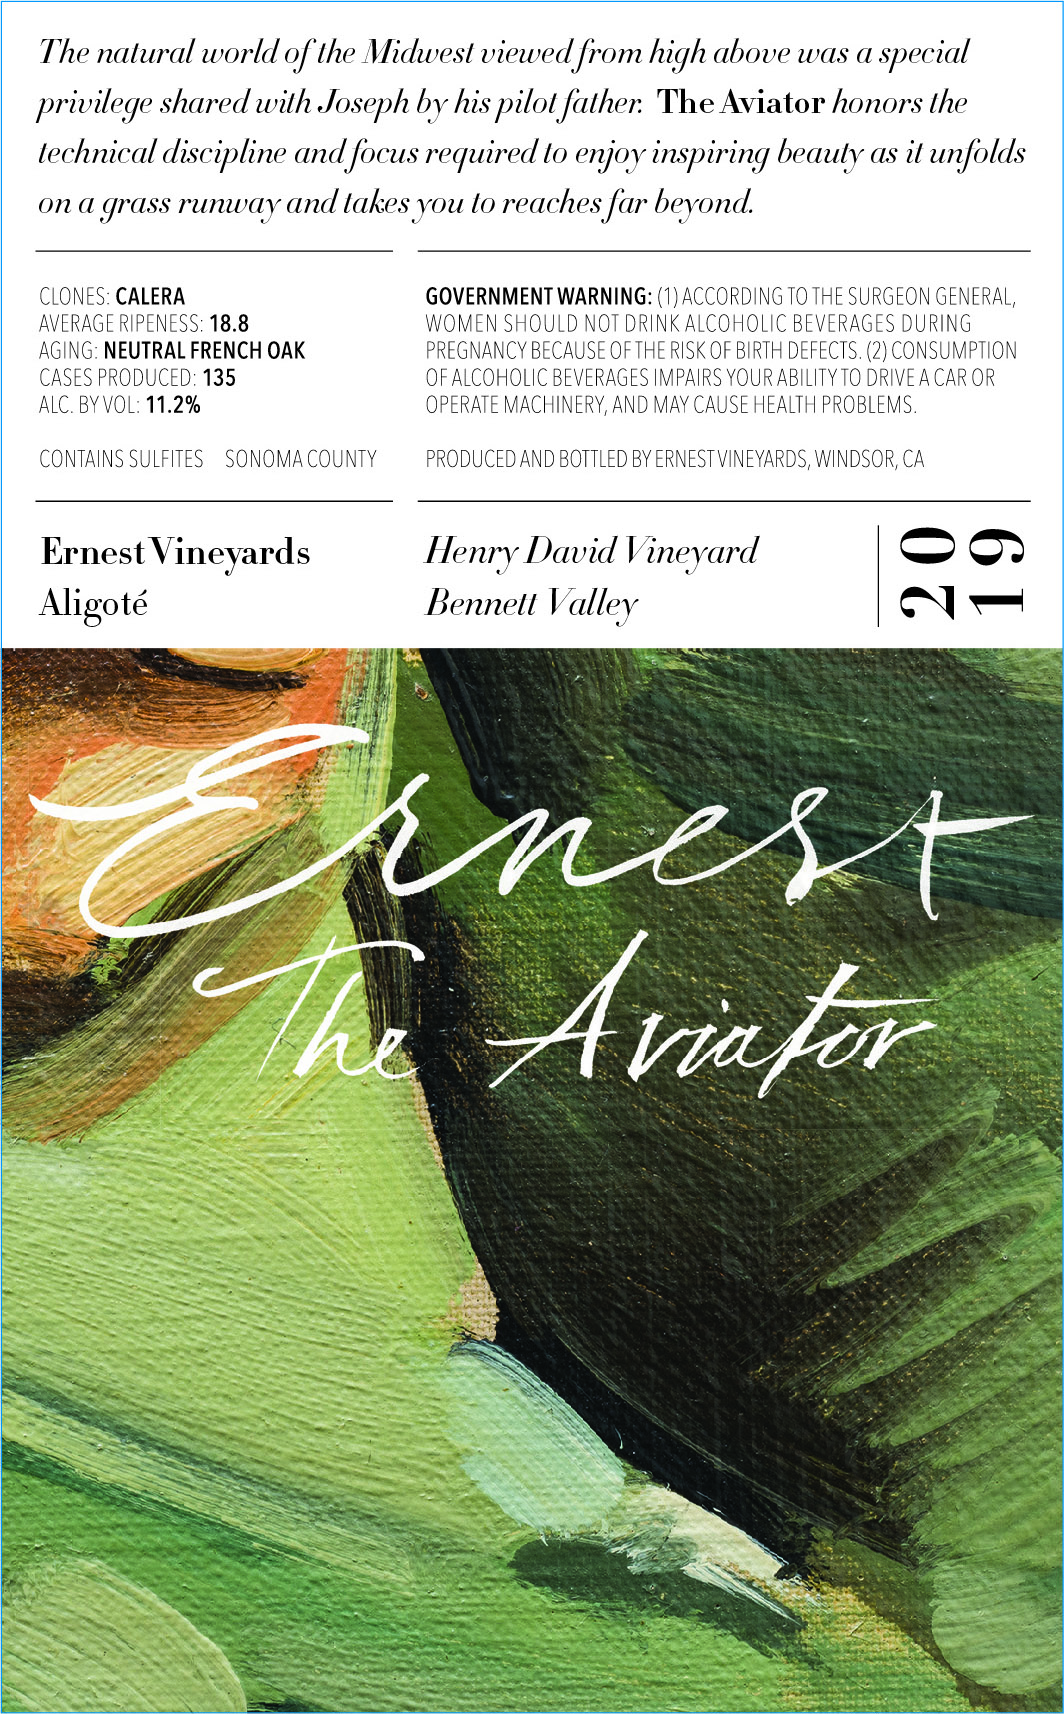 Henry David Vineyard Aligoté 2019 The Aviator - Ernest Vineyards